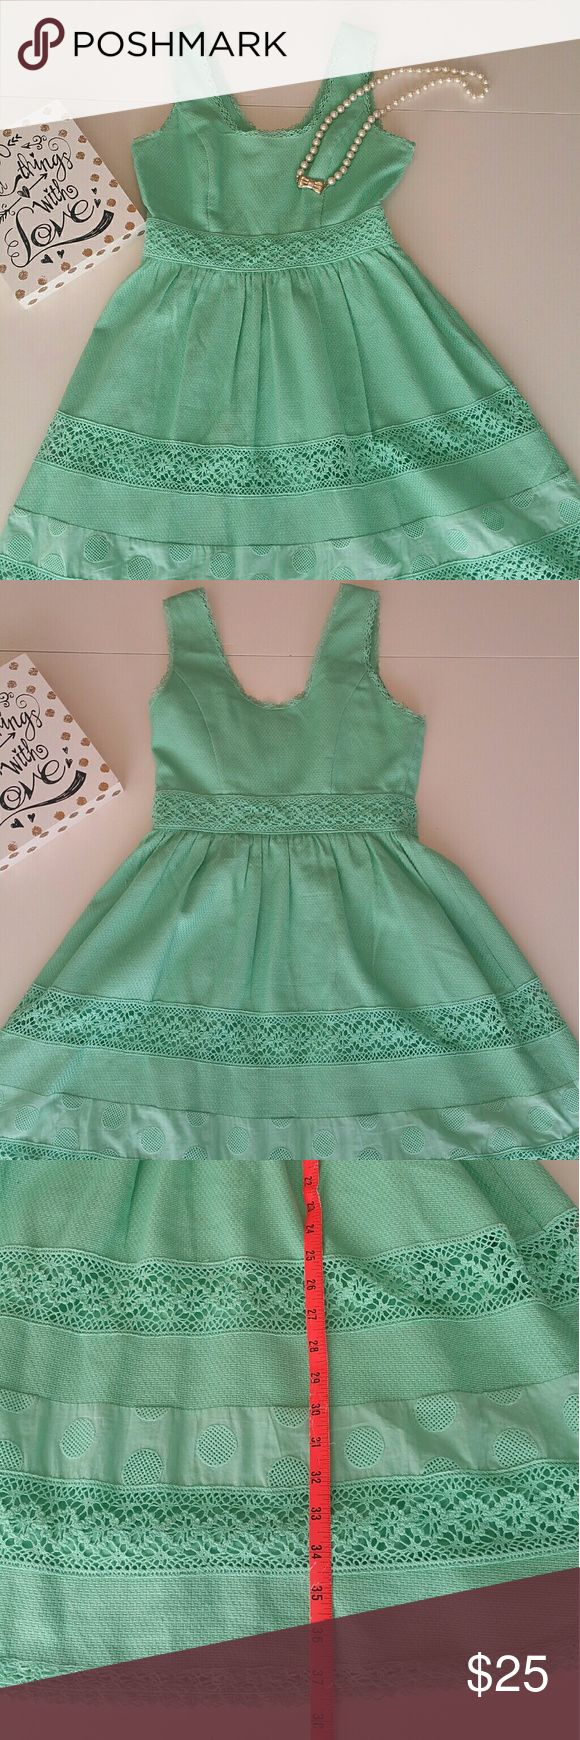 Jessica Simpson Cotton Dress Mint green Super adorable Jessica Simpson cotton A line dress with crochet trim. Perfect for summer. Dress up with wedge sandals or down with ballerina flats or sandals. Dress has been gently used. There are two or three little stains as pictured that may come out with dry cleaning. See pictures for measurements. Feel free to ask questions. Jessica Simpson Dresses